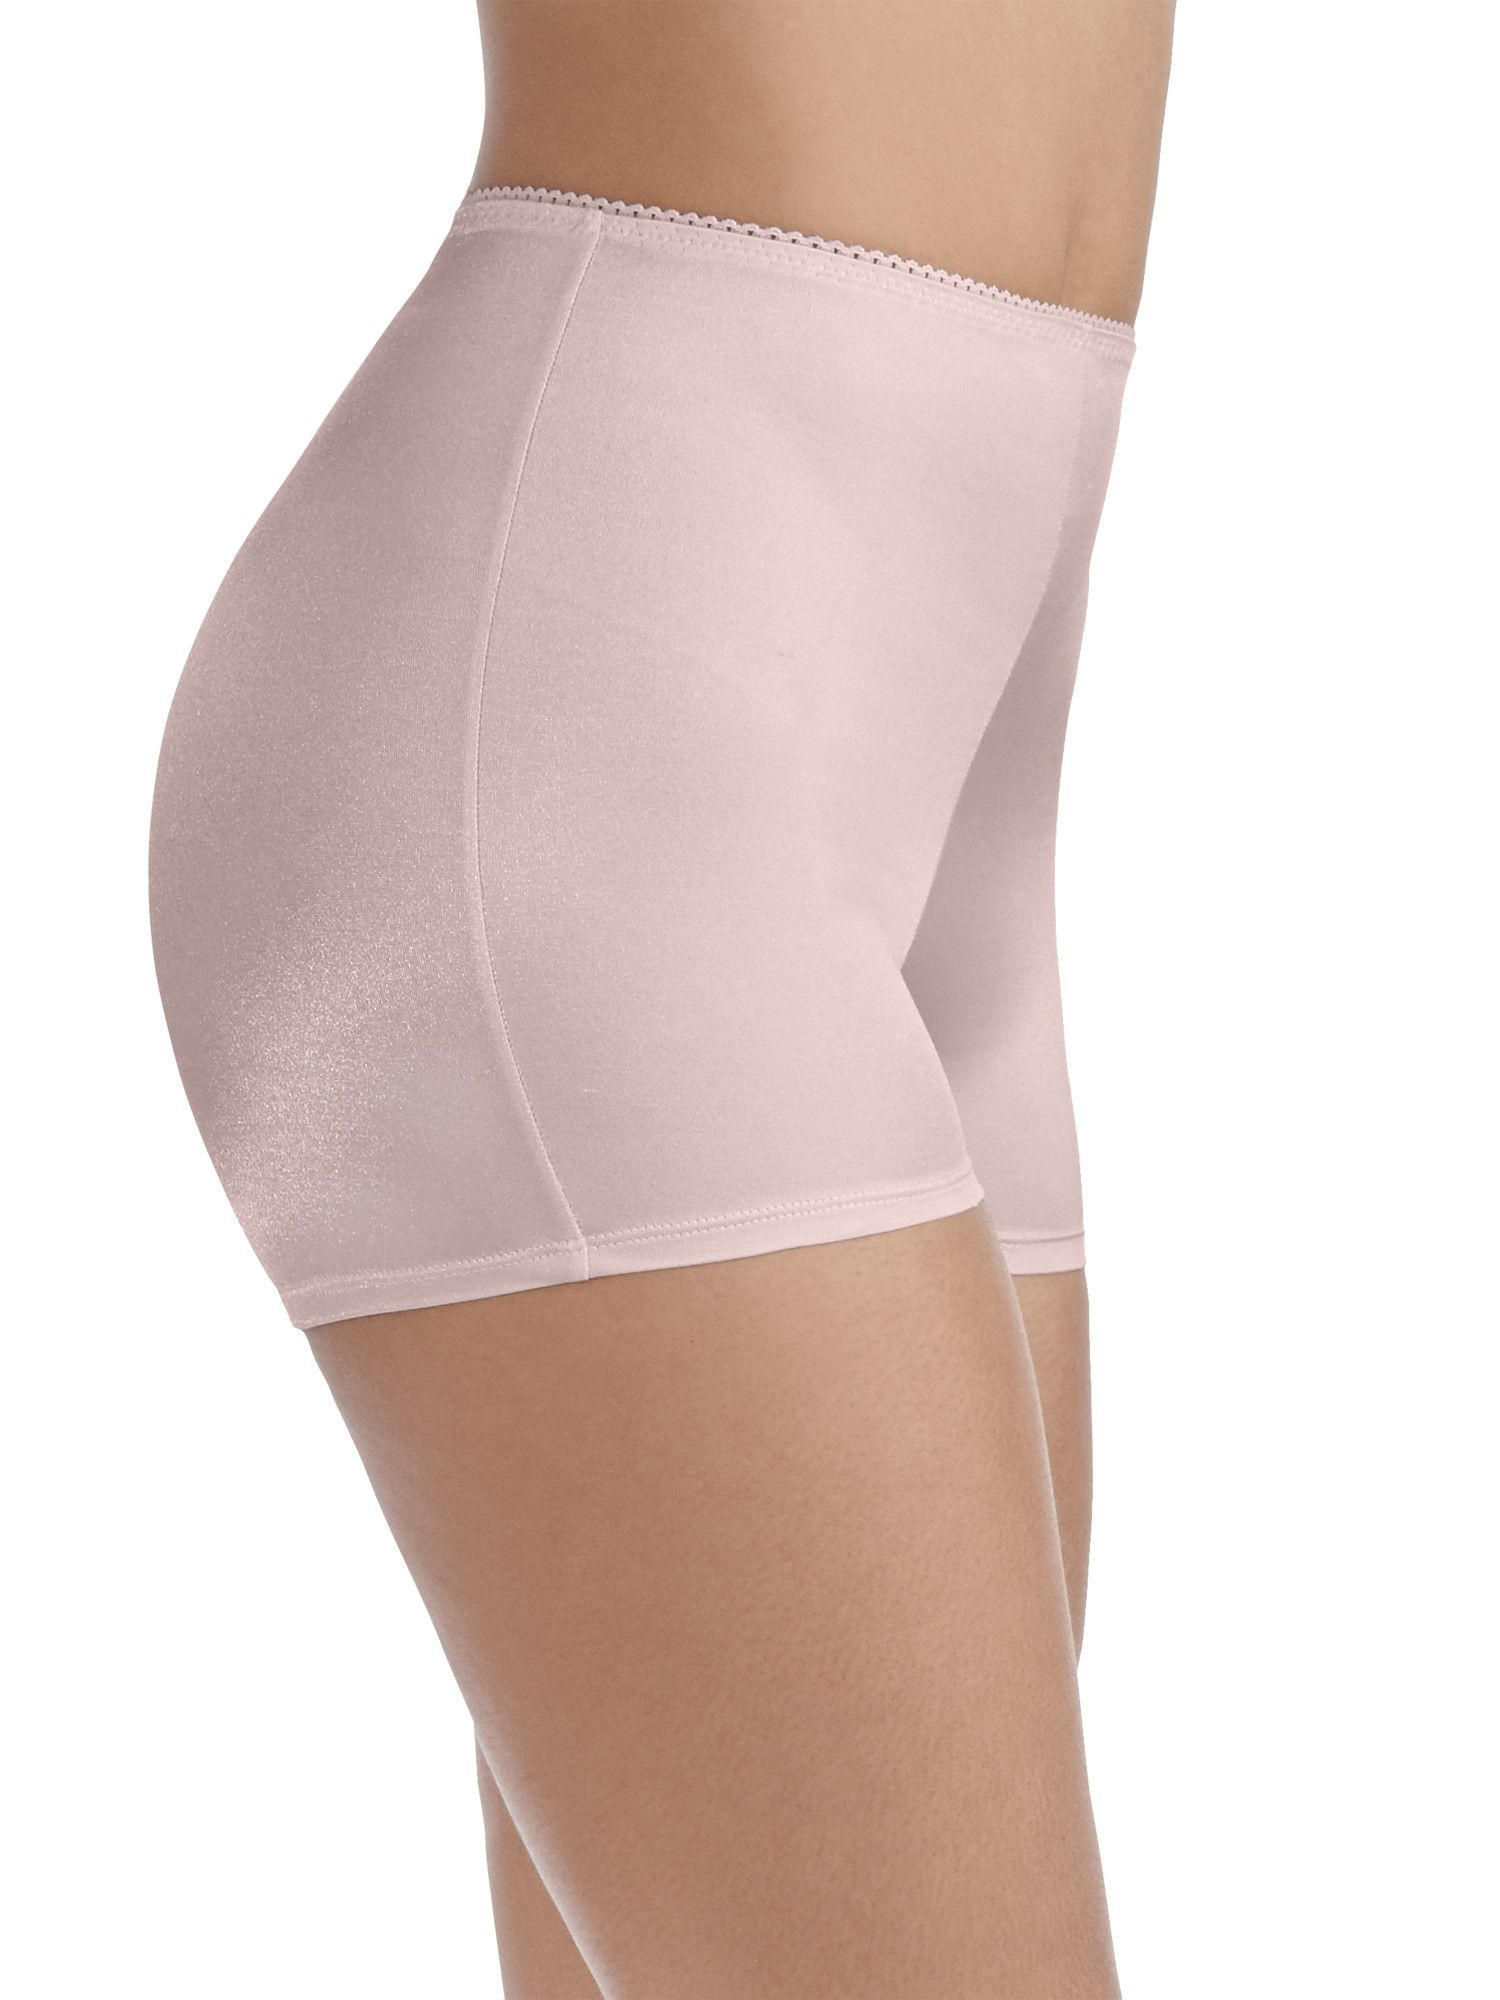 16eb8902cf6 Women's Undershapers Light Control Boyshort Panty, 3 Pack, Style 3442301# Light, #